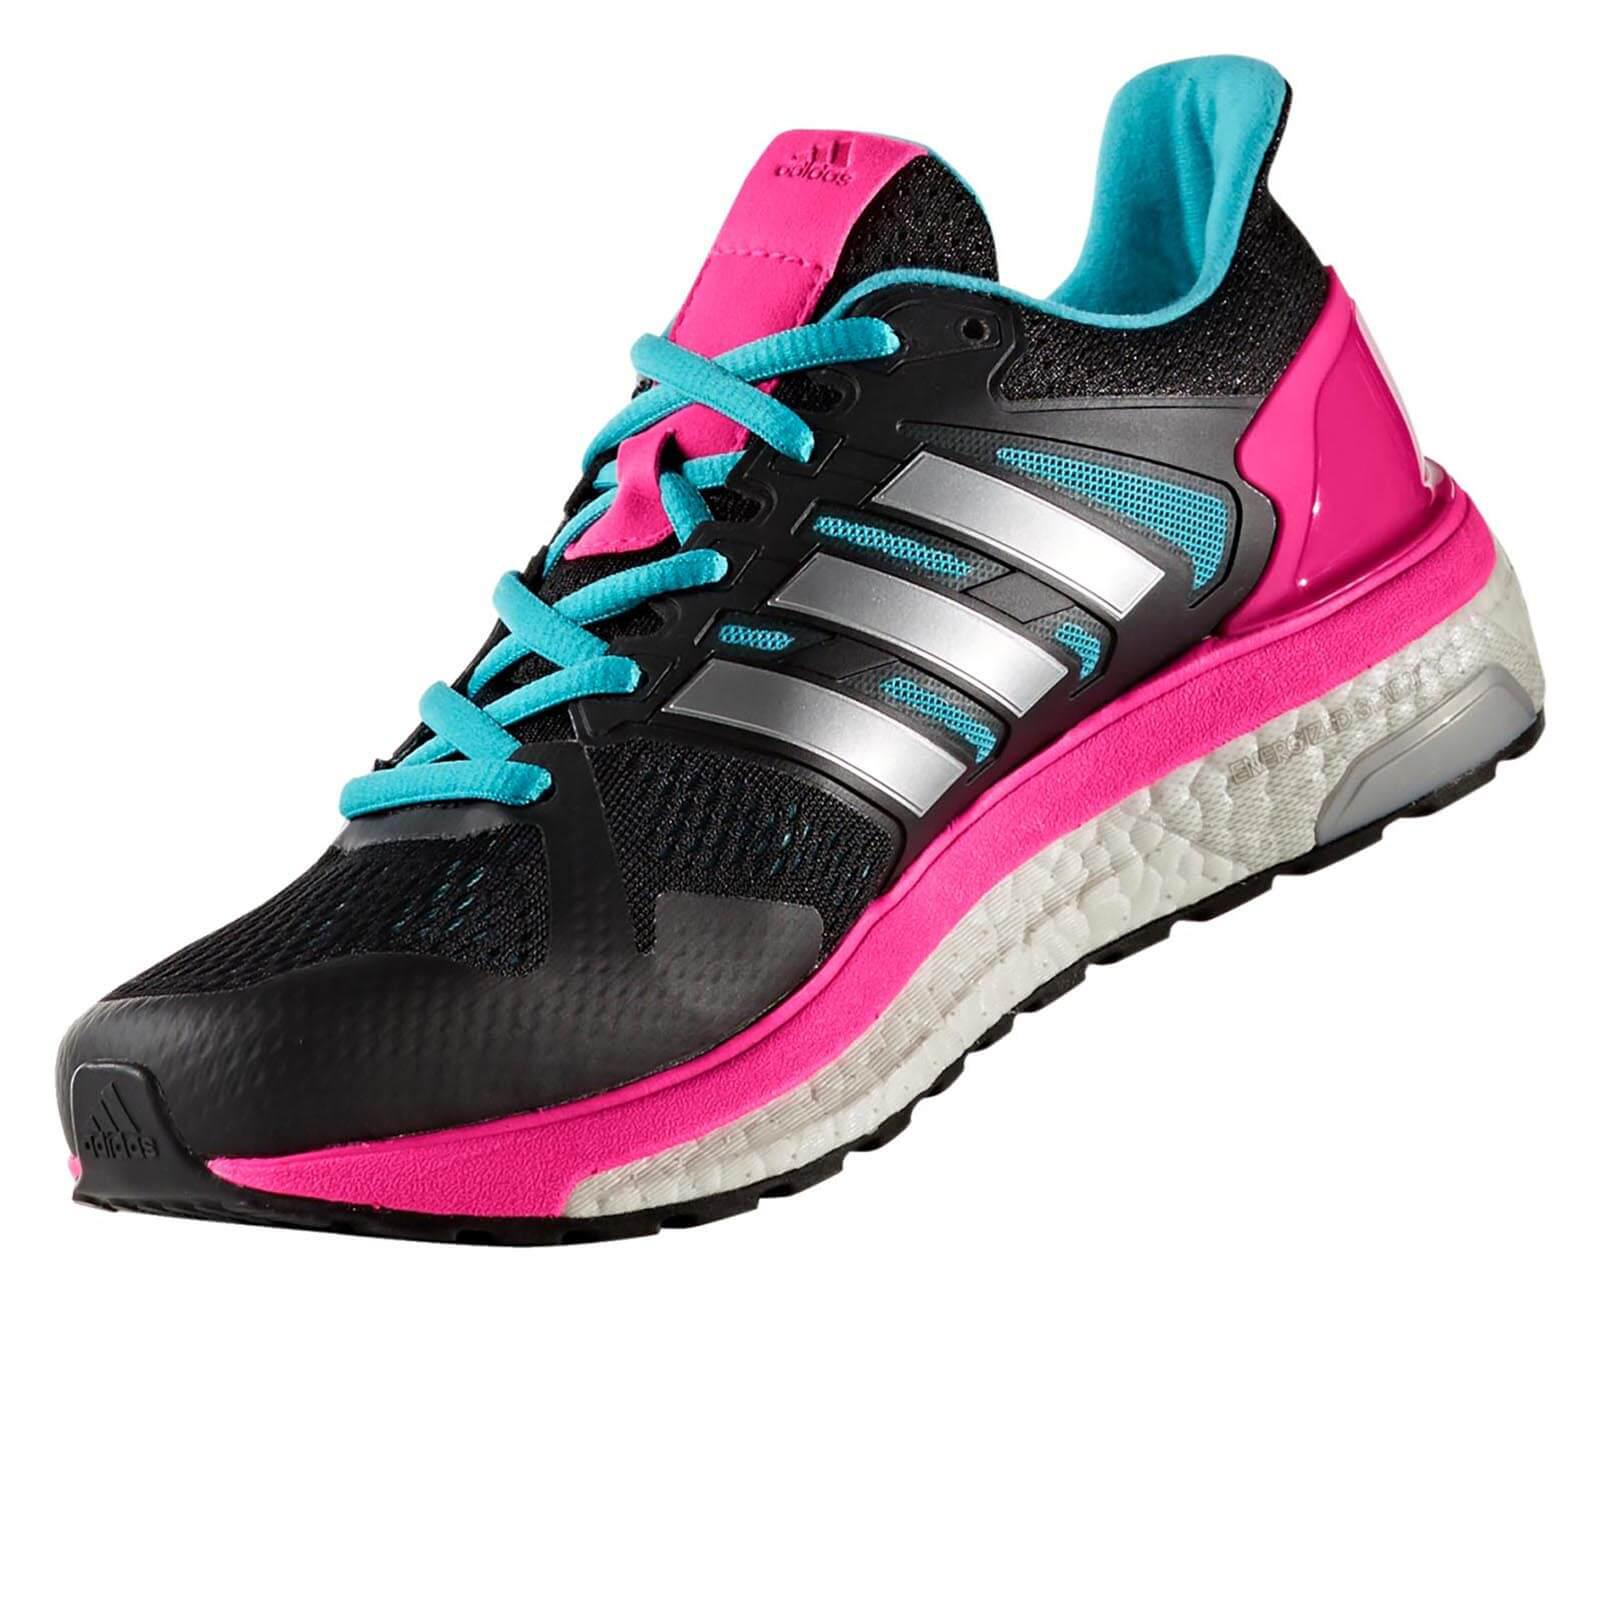 f1e93f531 Lyst - adidas Supernova St Boost Stability Running Shoes Core Black ...